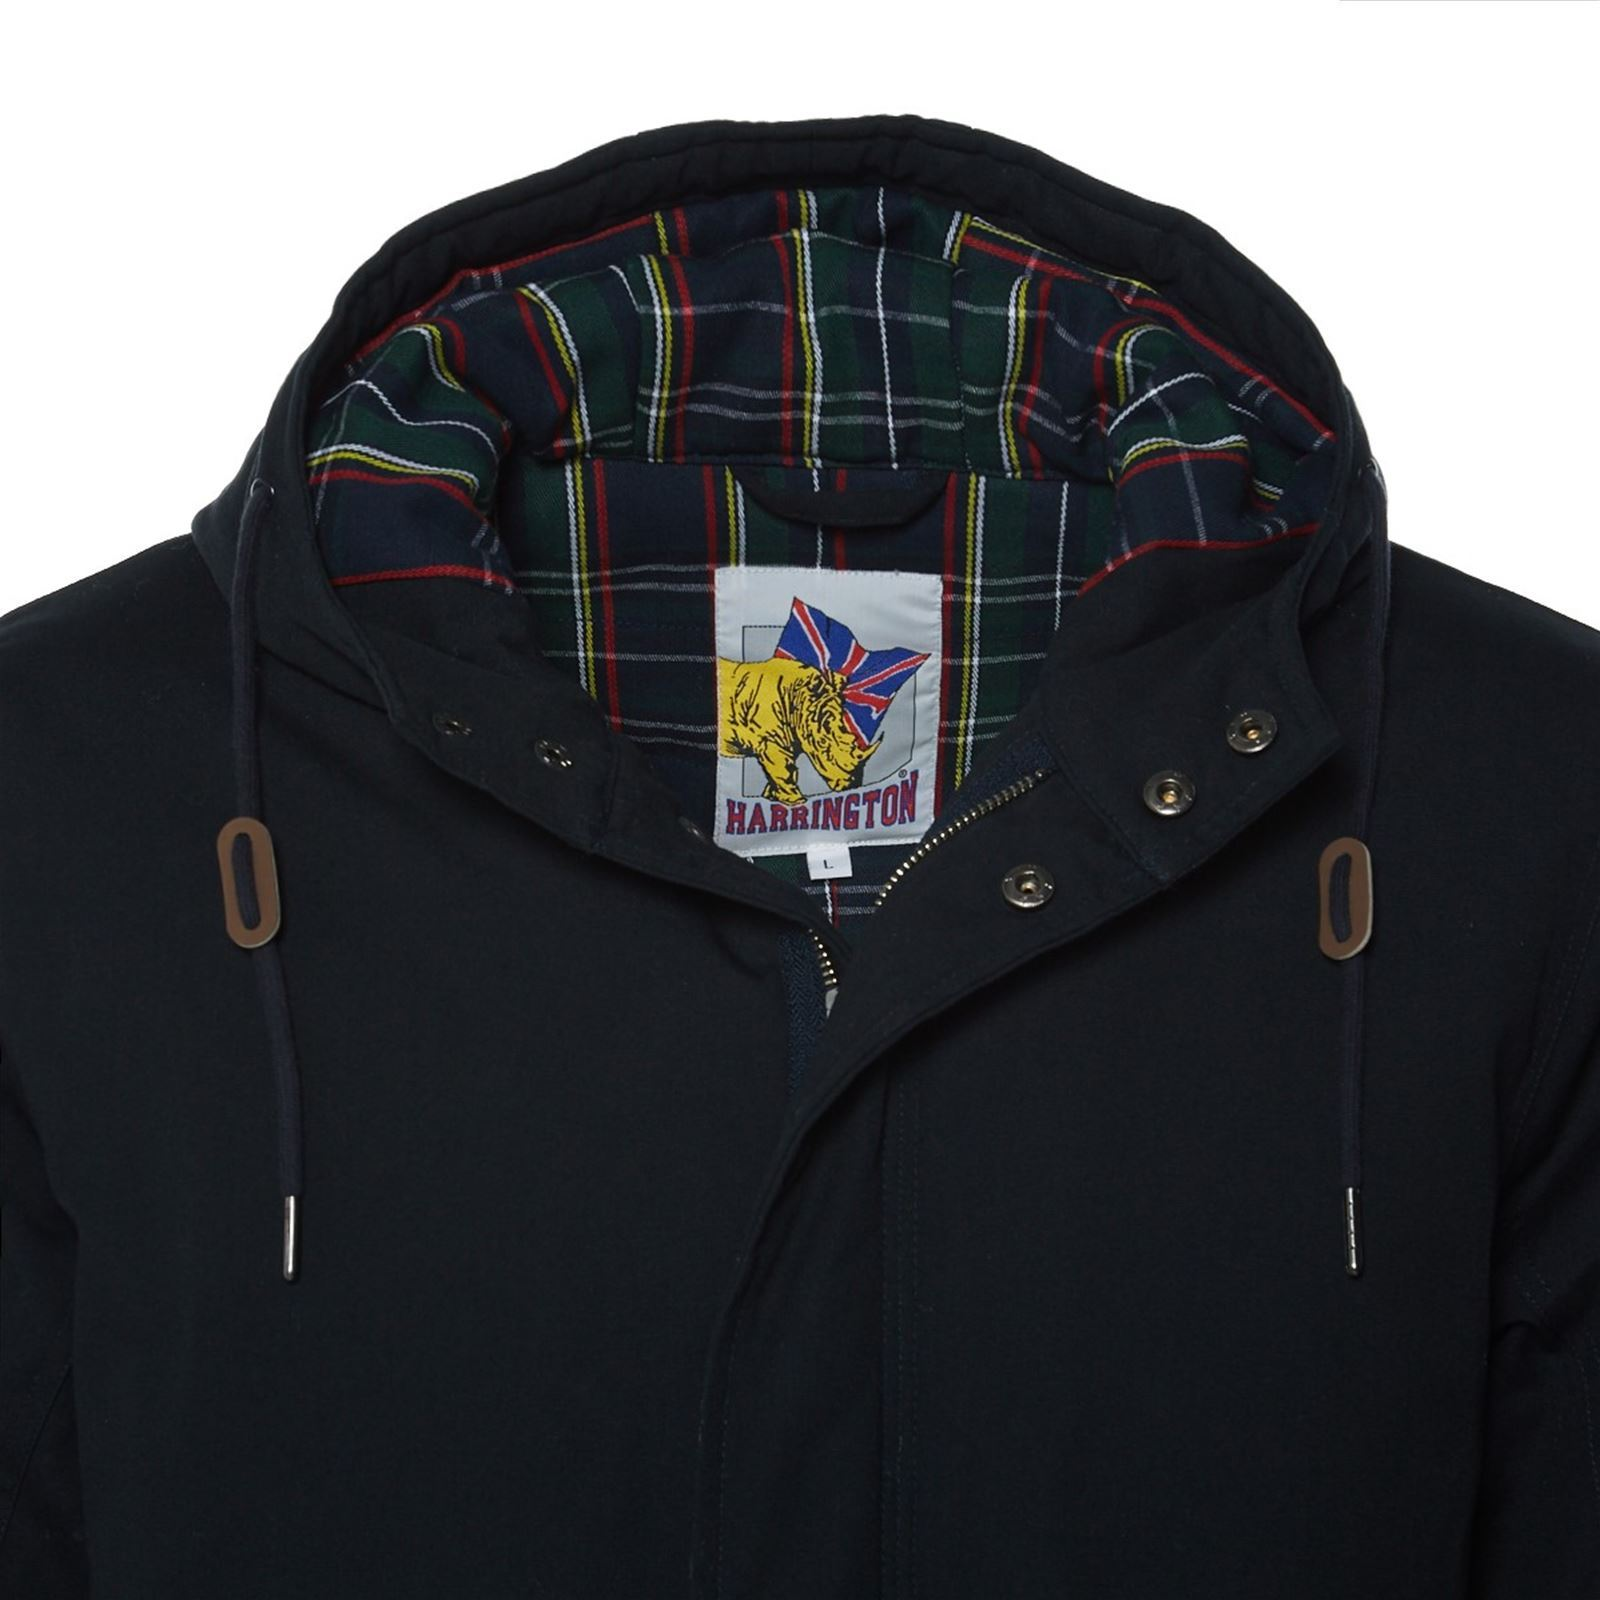 Harrington Bleu Jimmy Jimmy Parka Harrington Parka qwZ1XrxqT